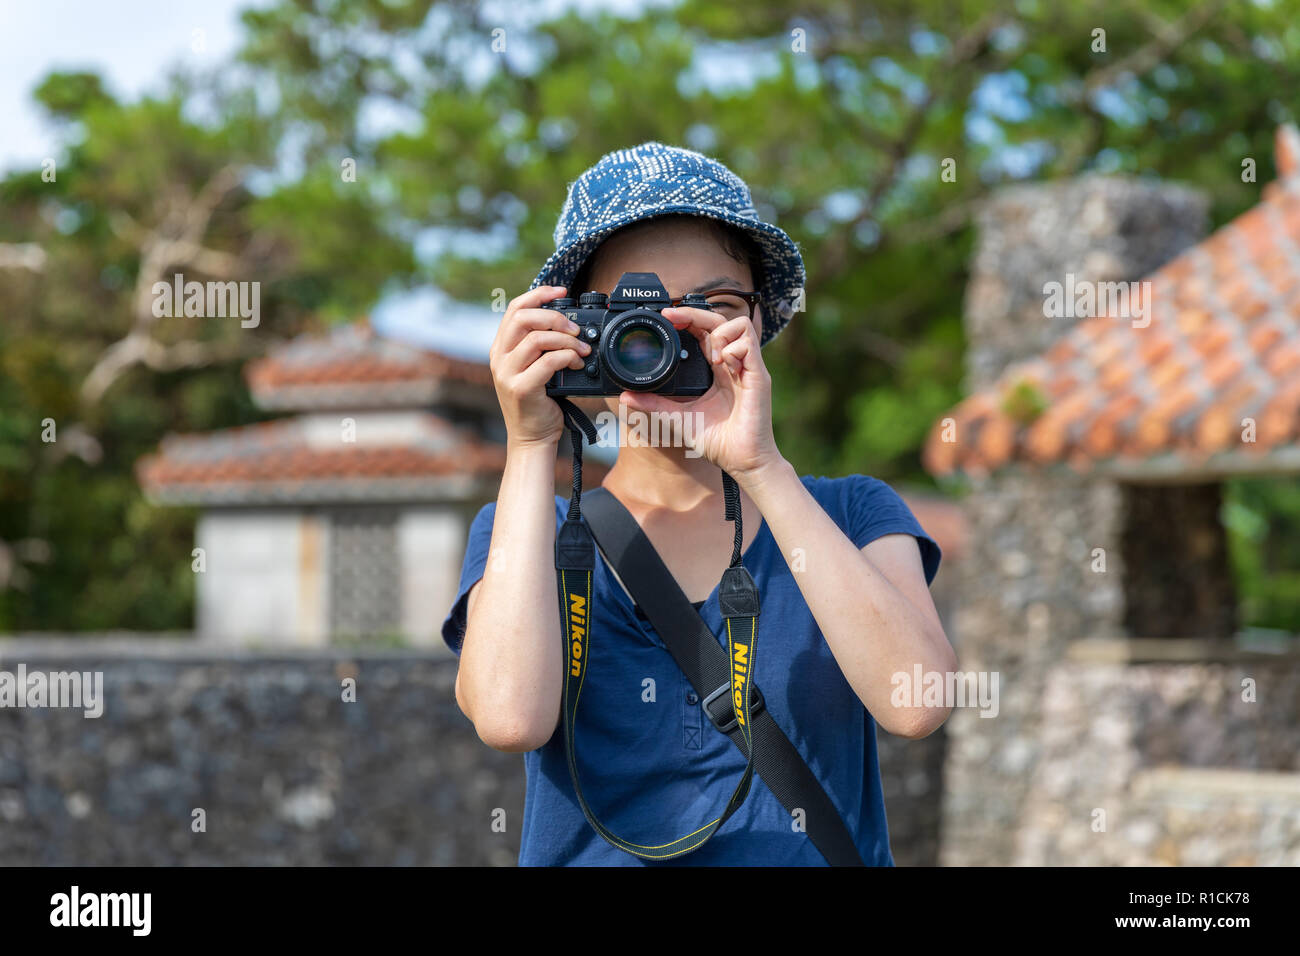 Japanese tourist taking a photo with a Nikon F3 camera; Mabuni Hill Observation Deck, Itoman, Okinawa, Japan - Stock Image